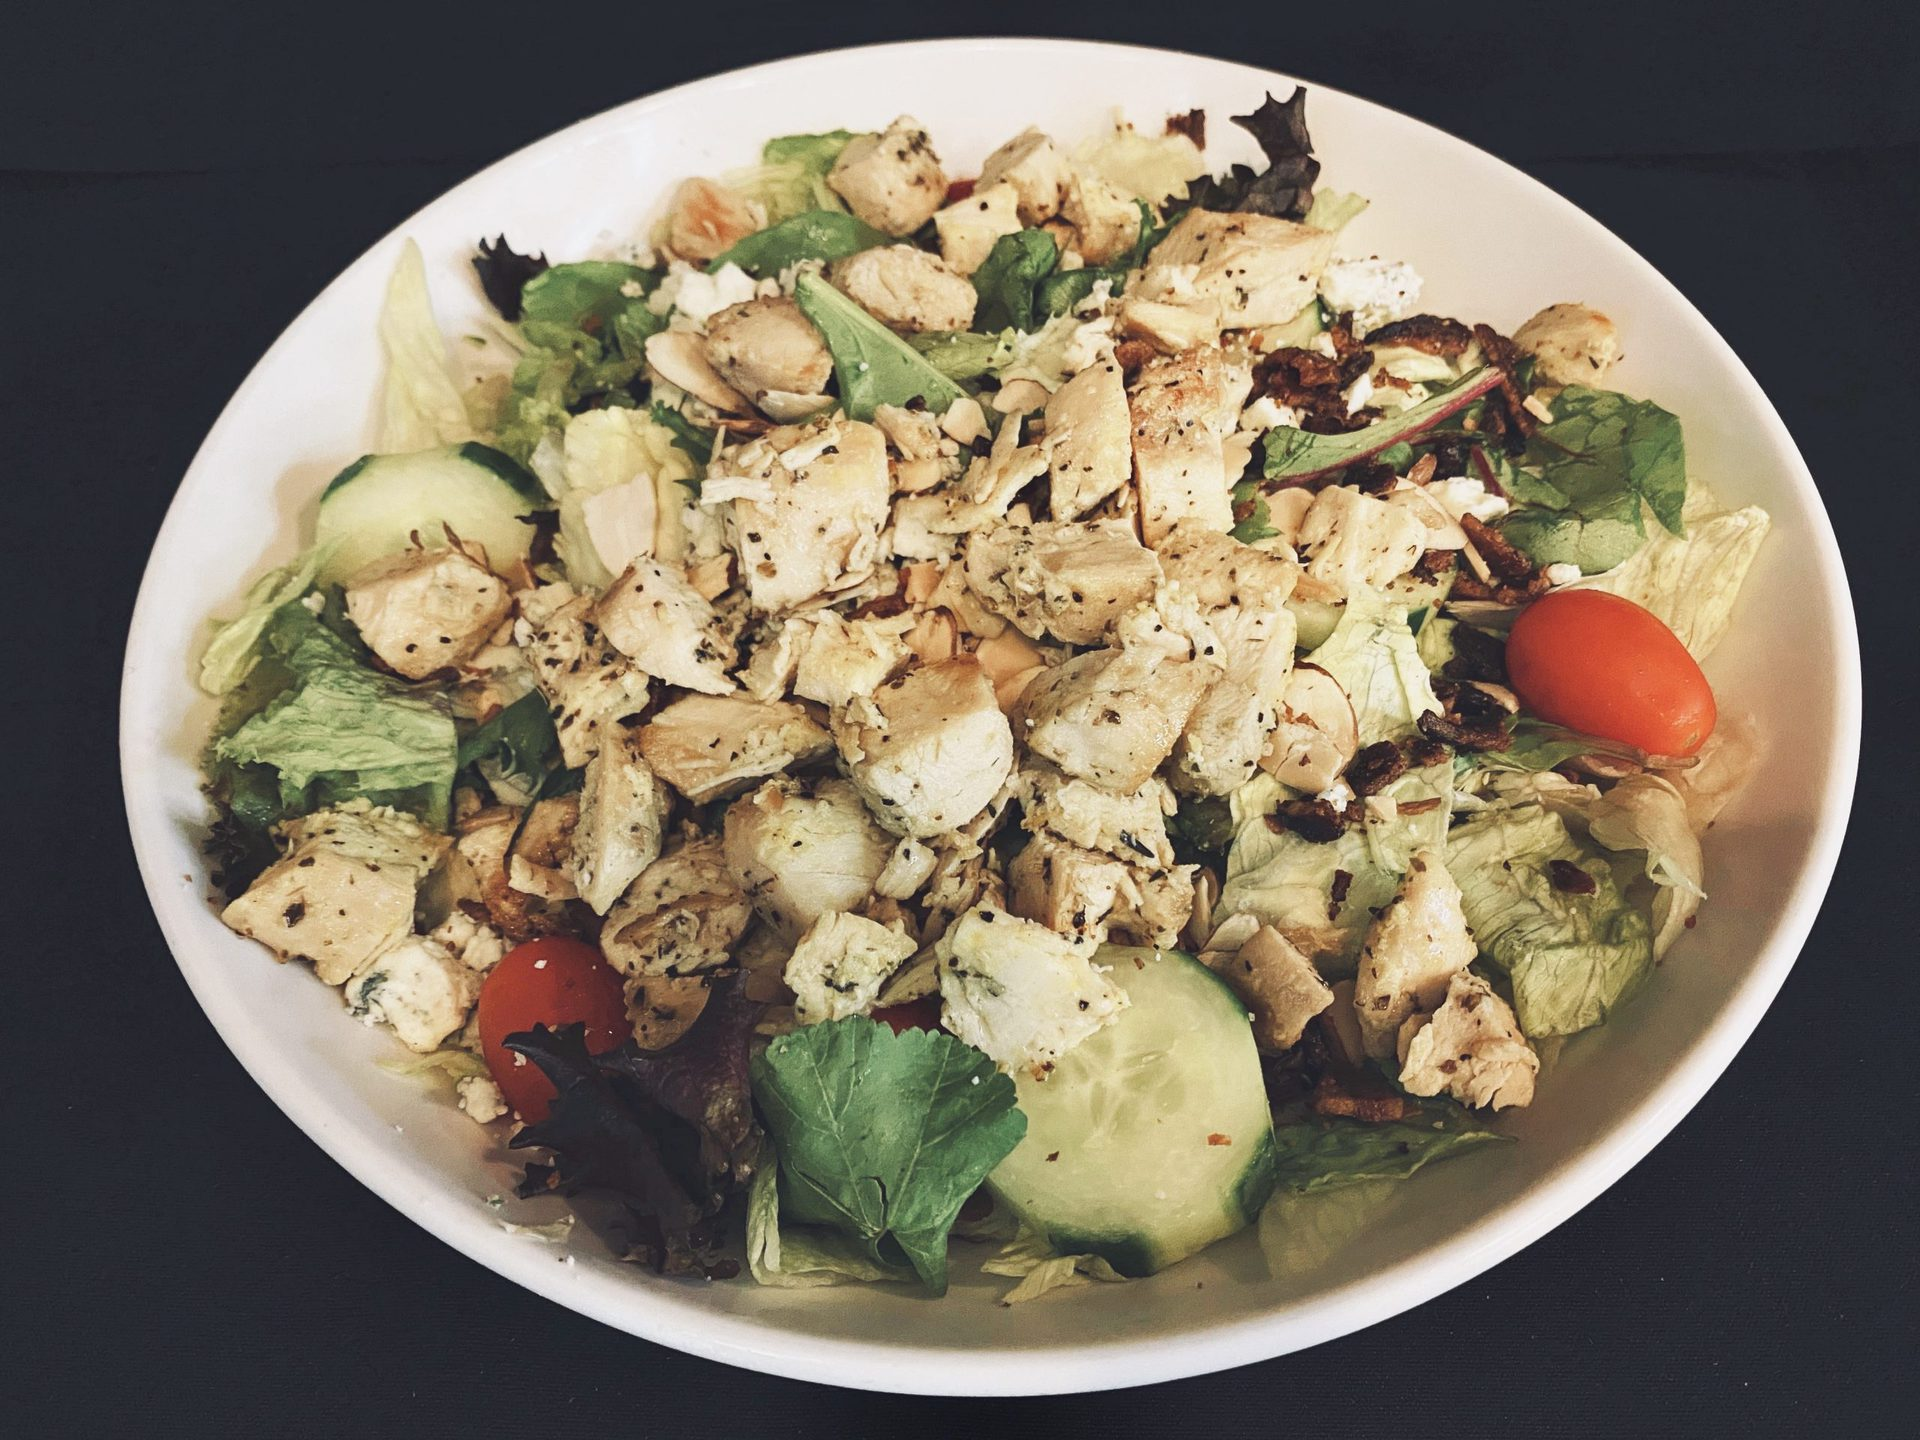 Salad in a bowl.